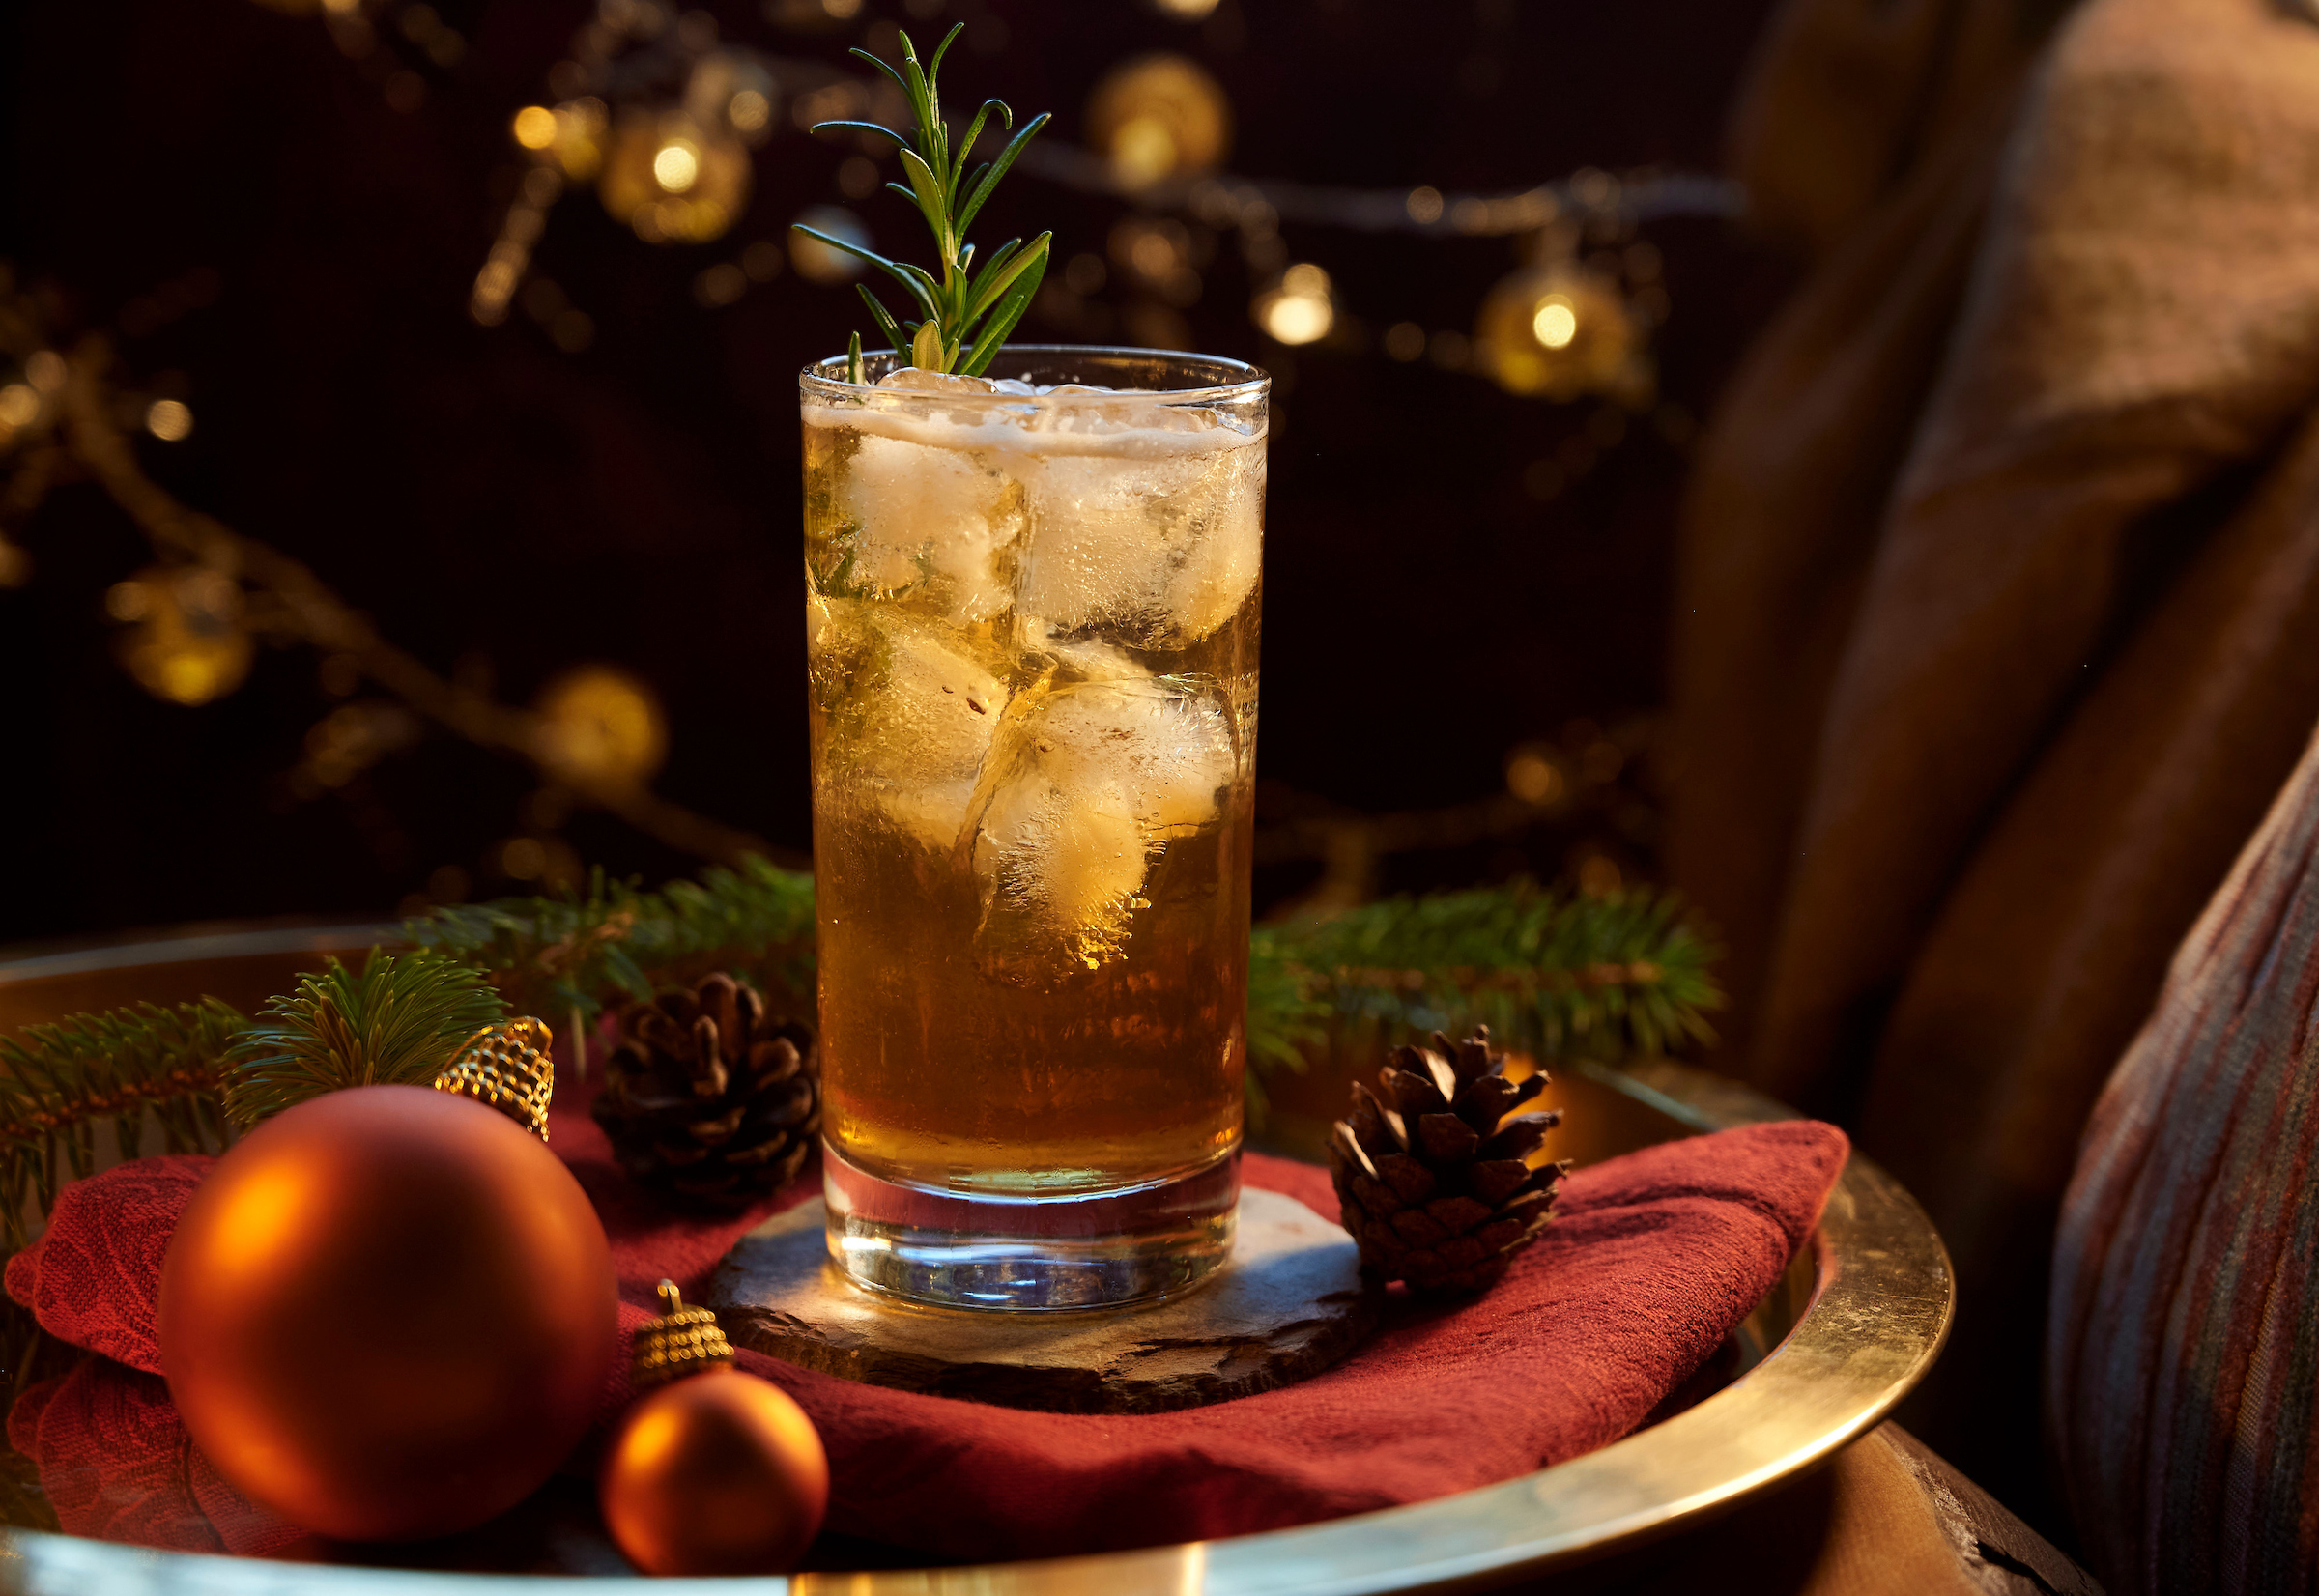 Bardinet Christmas 2020 - Food and Drink Scotland